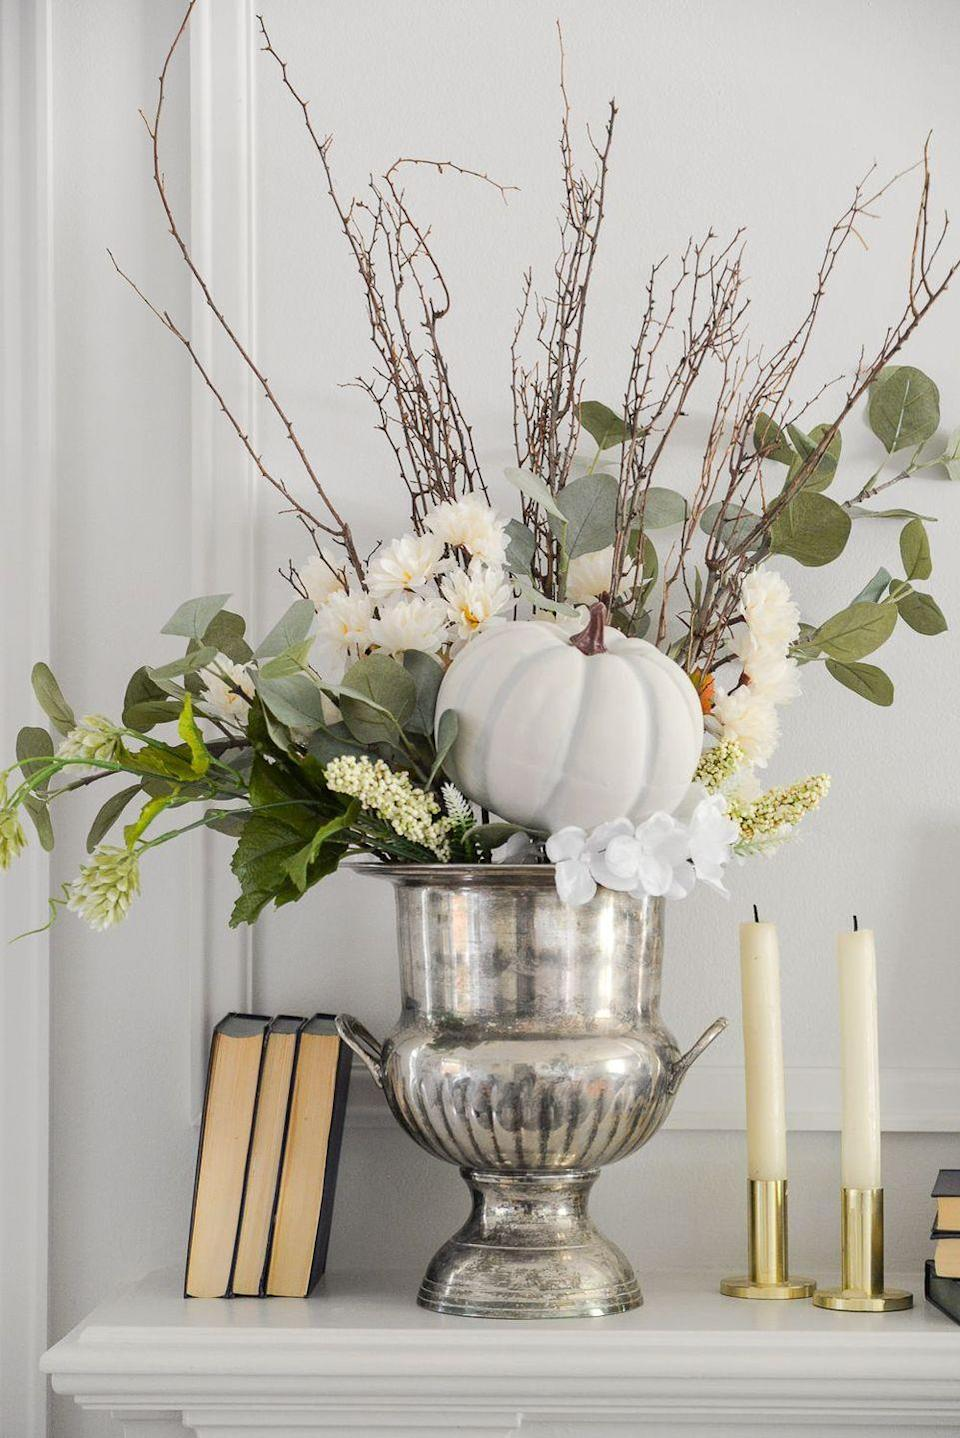 """<p>To make a fall-ish floral arrangement for your mantel, start with a silver wine bucket and layer it with faux florals, branches, and a pumpkin.</p><p><strong>Get the tutorial at <a href=""""https://www.ramblingrenovators.ca/2020/09/fall-flower-arrangement-diy.html"""" rel=""""nofollow noopener"""" target=""""_blank"""" data-ylk=""""slk:Rambling Renovators"""" class=""""link rapid-noclick-resp"""">Rambling Renovators</a>.</strong></p><p><a class=""""link rapid-noclick-resp"""" href=""""https://go.redirectingat.com?id=74968X1596630&url=https%3A%2F%2Fwww.walmart.com%2Fip%2FSilver-Plated-Brass-Wine-Bucket%2F337375177&sref=https%3A%2F%2Fwww.thepioneerwoman.com%2Fhome-lifestyle%2Fcrafts-diy%2Fg36891743%2Ffall-mantel-decorations%2F"""" rel=""""nofollow noopener"""" target=""""_blank"""" data-ylk=""""slk:SHOP WINE BUCKETS"""">SHOP WINE BUCKETS</a></p>"""